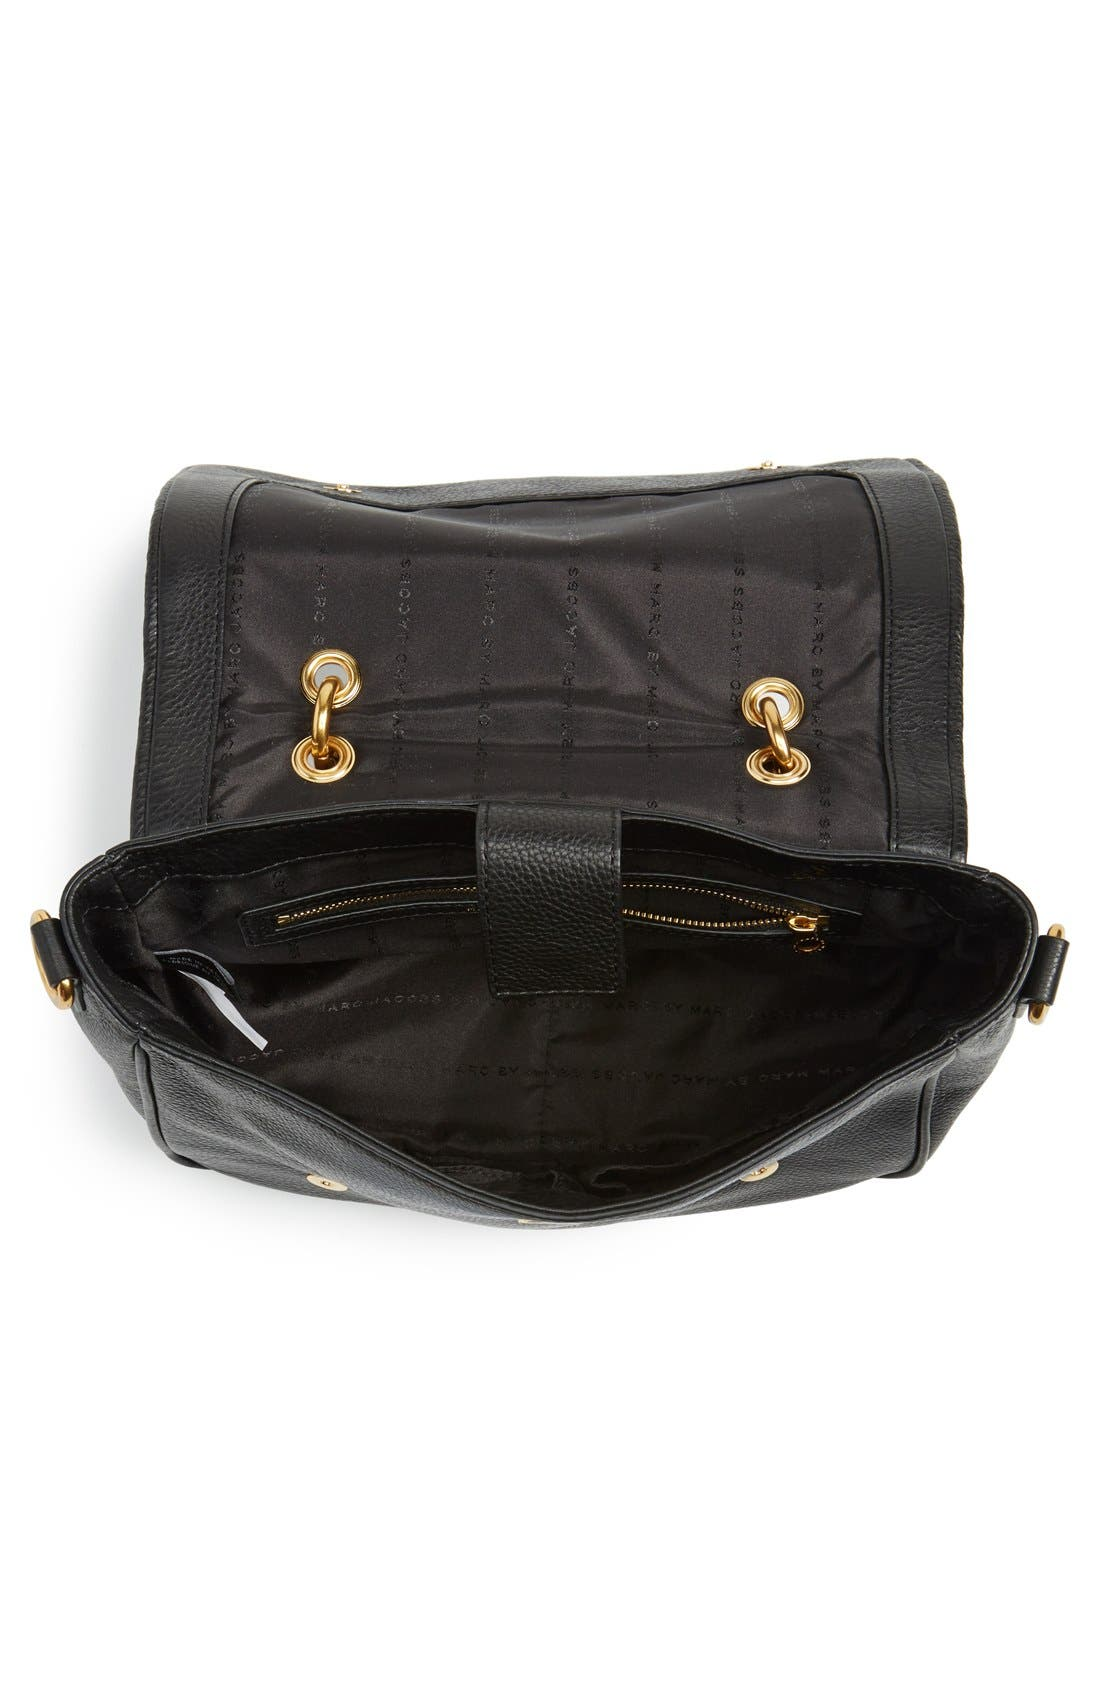 MARC BY MARC JACOBS 'Small Too Hot To Handle' Leather Tote,                             Alternate thumbnail 4, color,                             Black